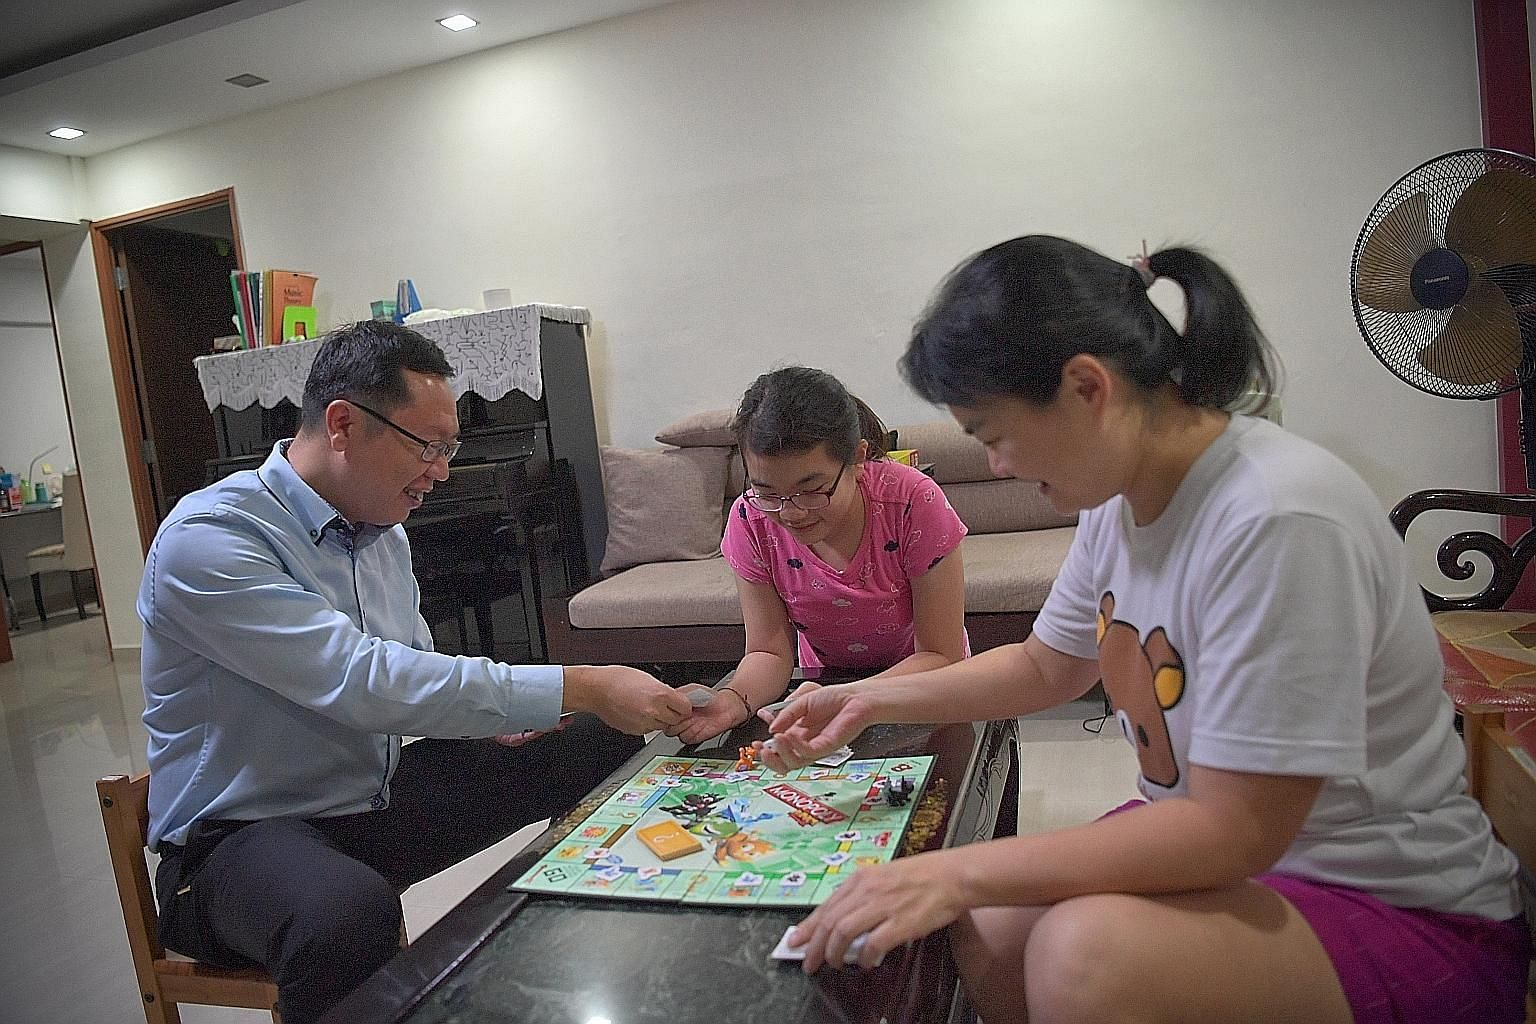 Mr Teo Cher Hwa and his wife, Ms Chew Chiou Pyng, playing Monopoly with their daughter Poh Huan at home. Mr Teo says playing a traditional board game like Monopoly is an excellent way to introduce their two children to the property market and how to